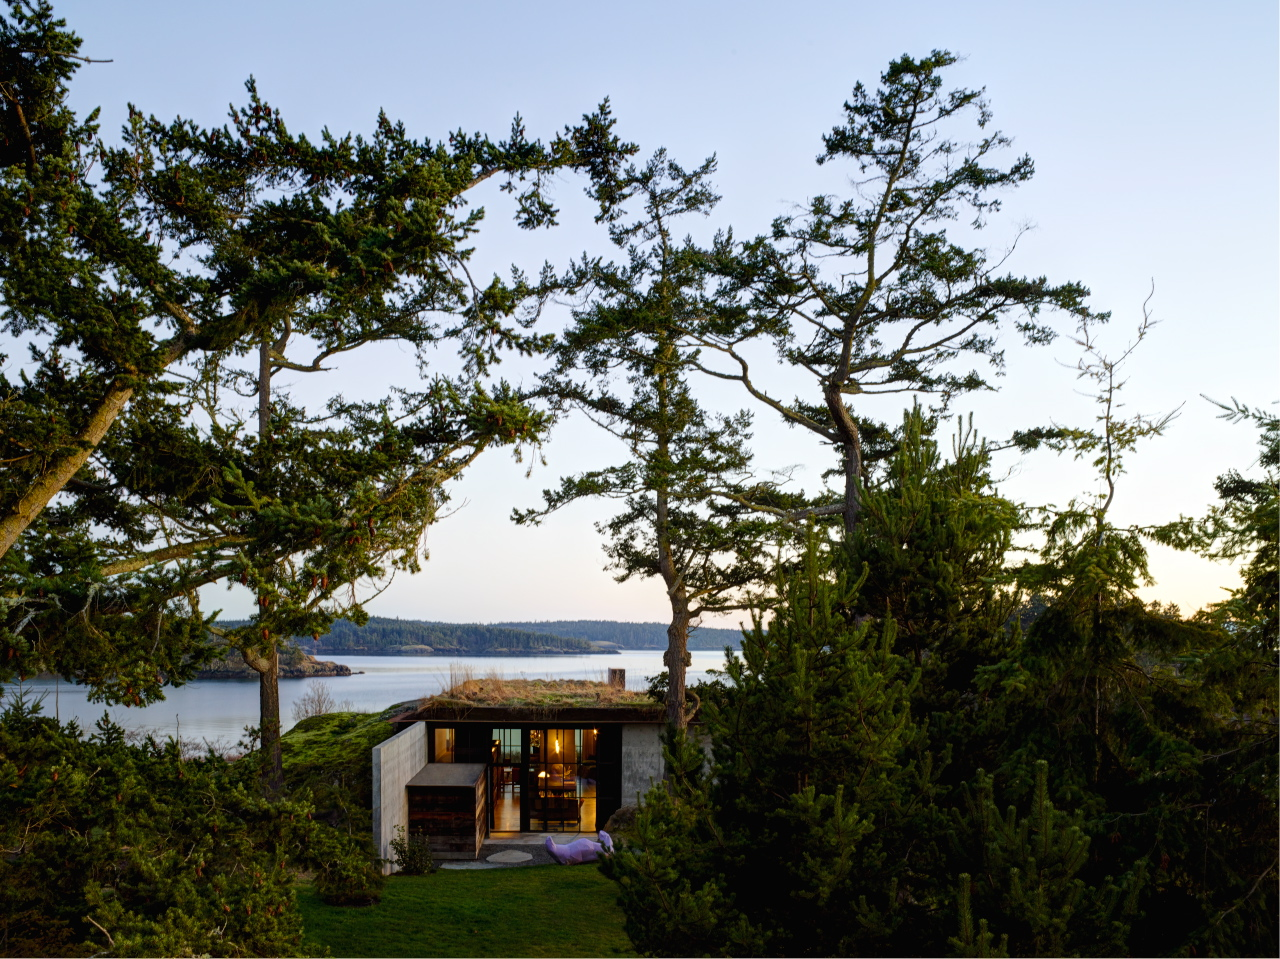 'The Pierre' by Olsen Kundig Architects situated on the San Juan Islands - Washington State. Shot for  Superhouse  by Karen McCartney published by Penguin Lantern.